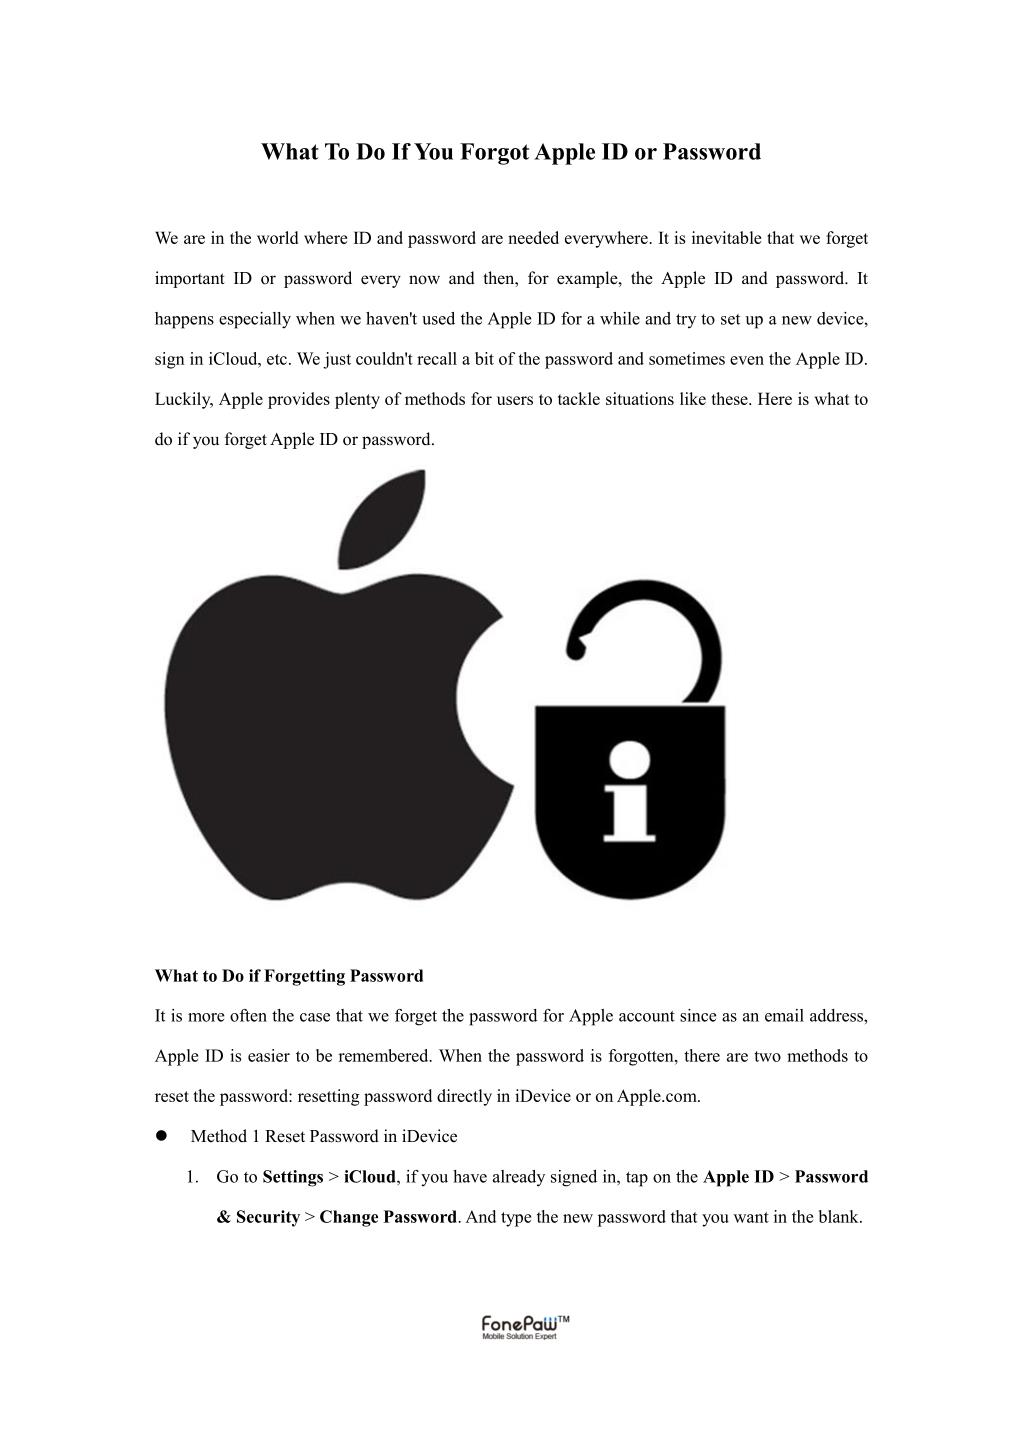 PPT - What To Do If You Forgot Apple ID or Password